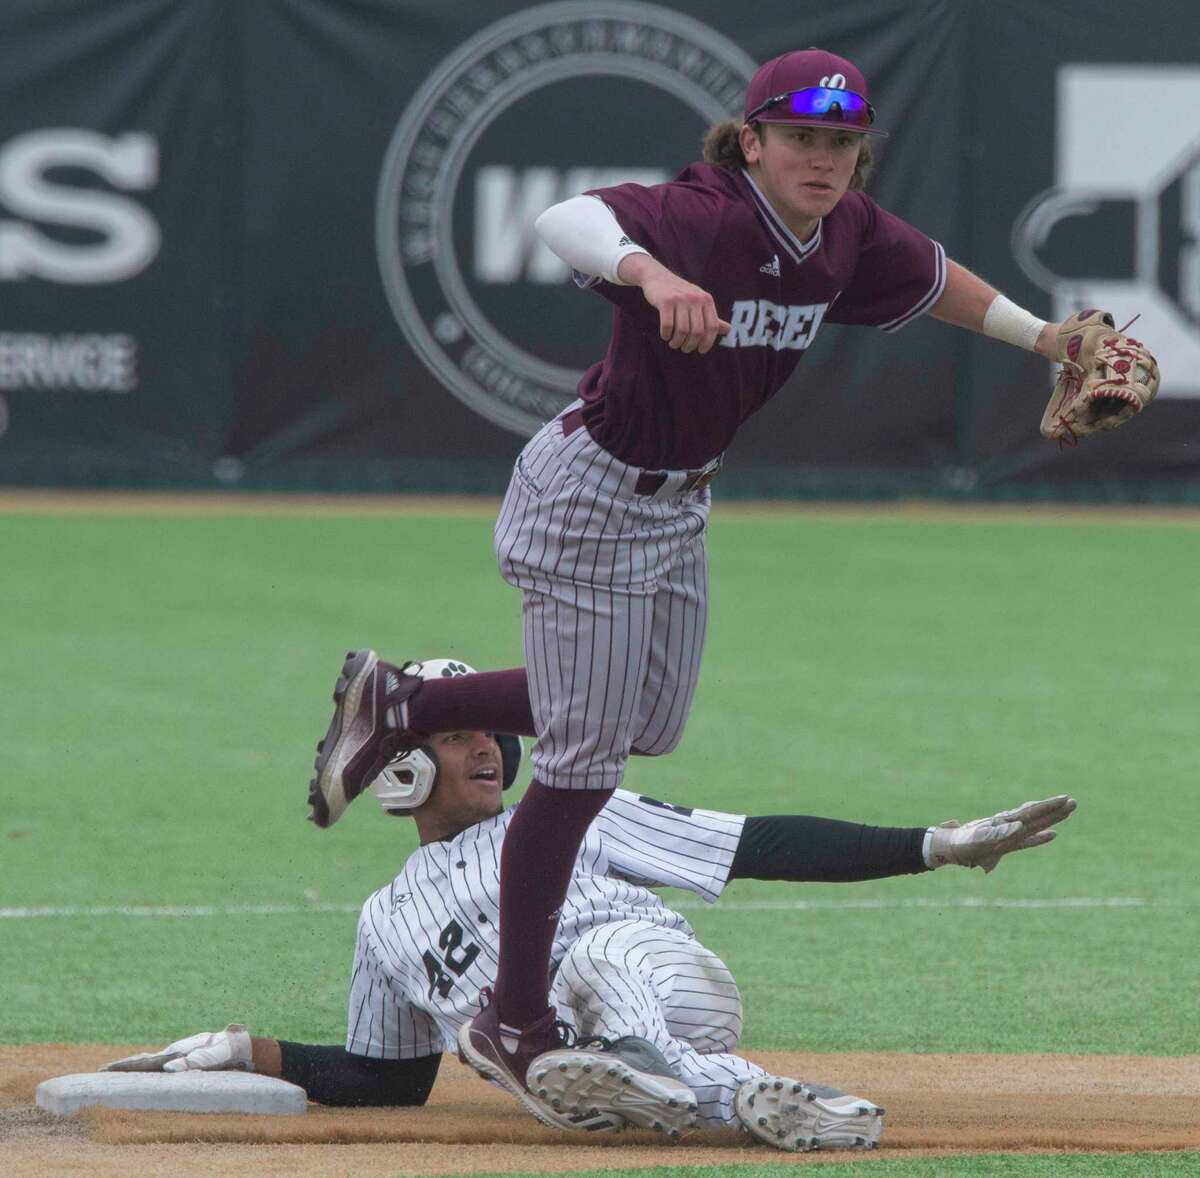 Lee High's Brayden Wynne leaps over Permian's Teo Banks after making the tag for an out at second 04/13/21 at McCanlies Field in Odessa. Tim Fischer/Reporter-Telegram